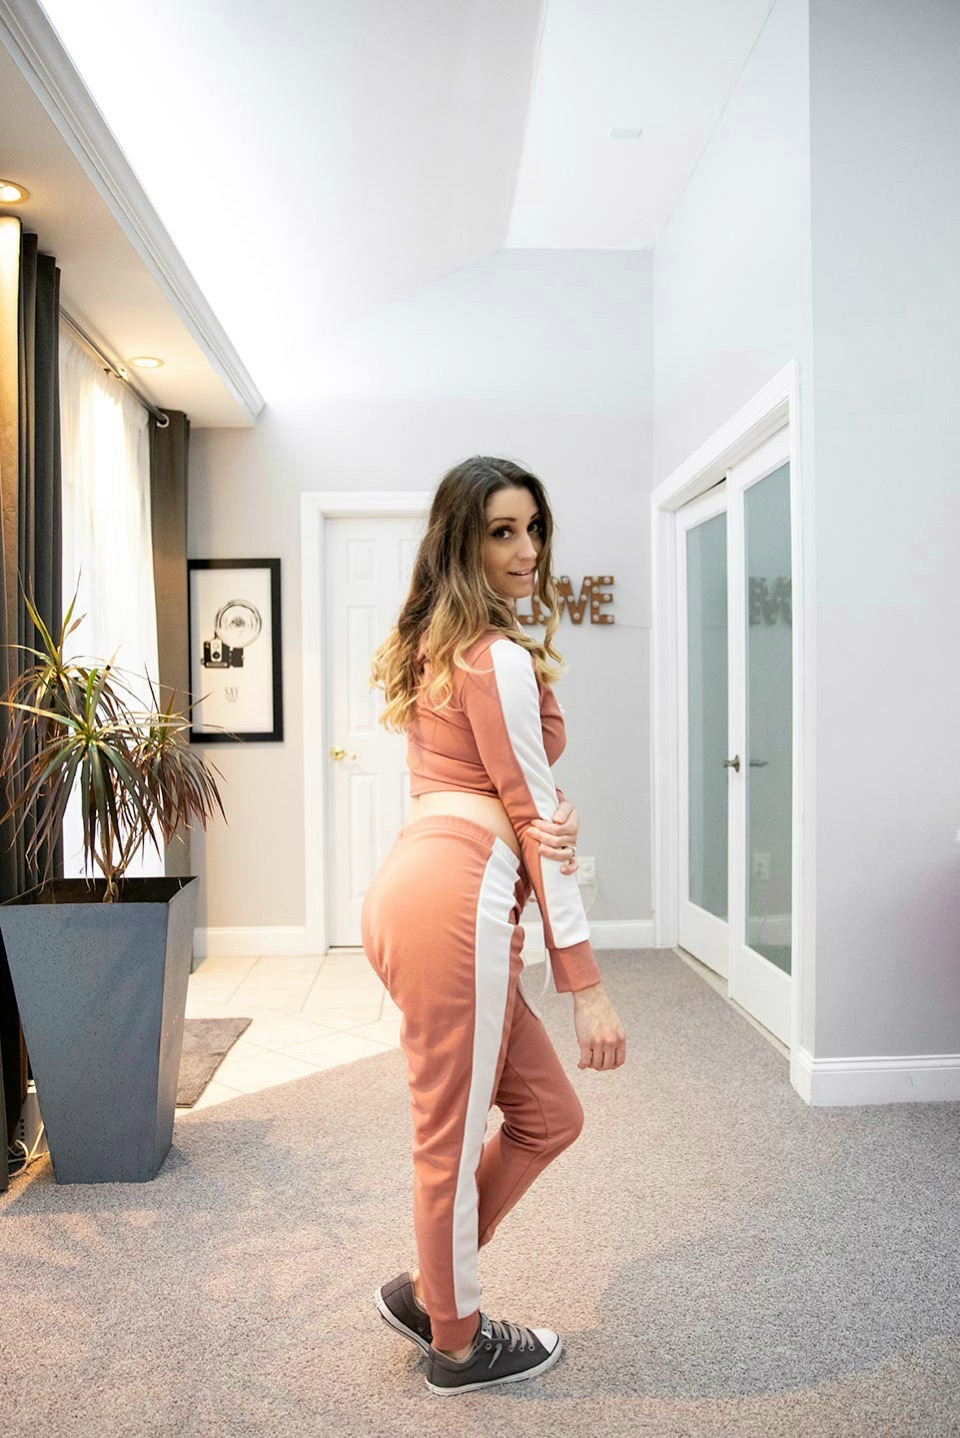 Dusky Pink With White Stripe Lounge Wear Set_Lexi3